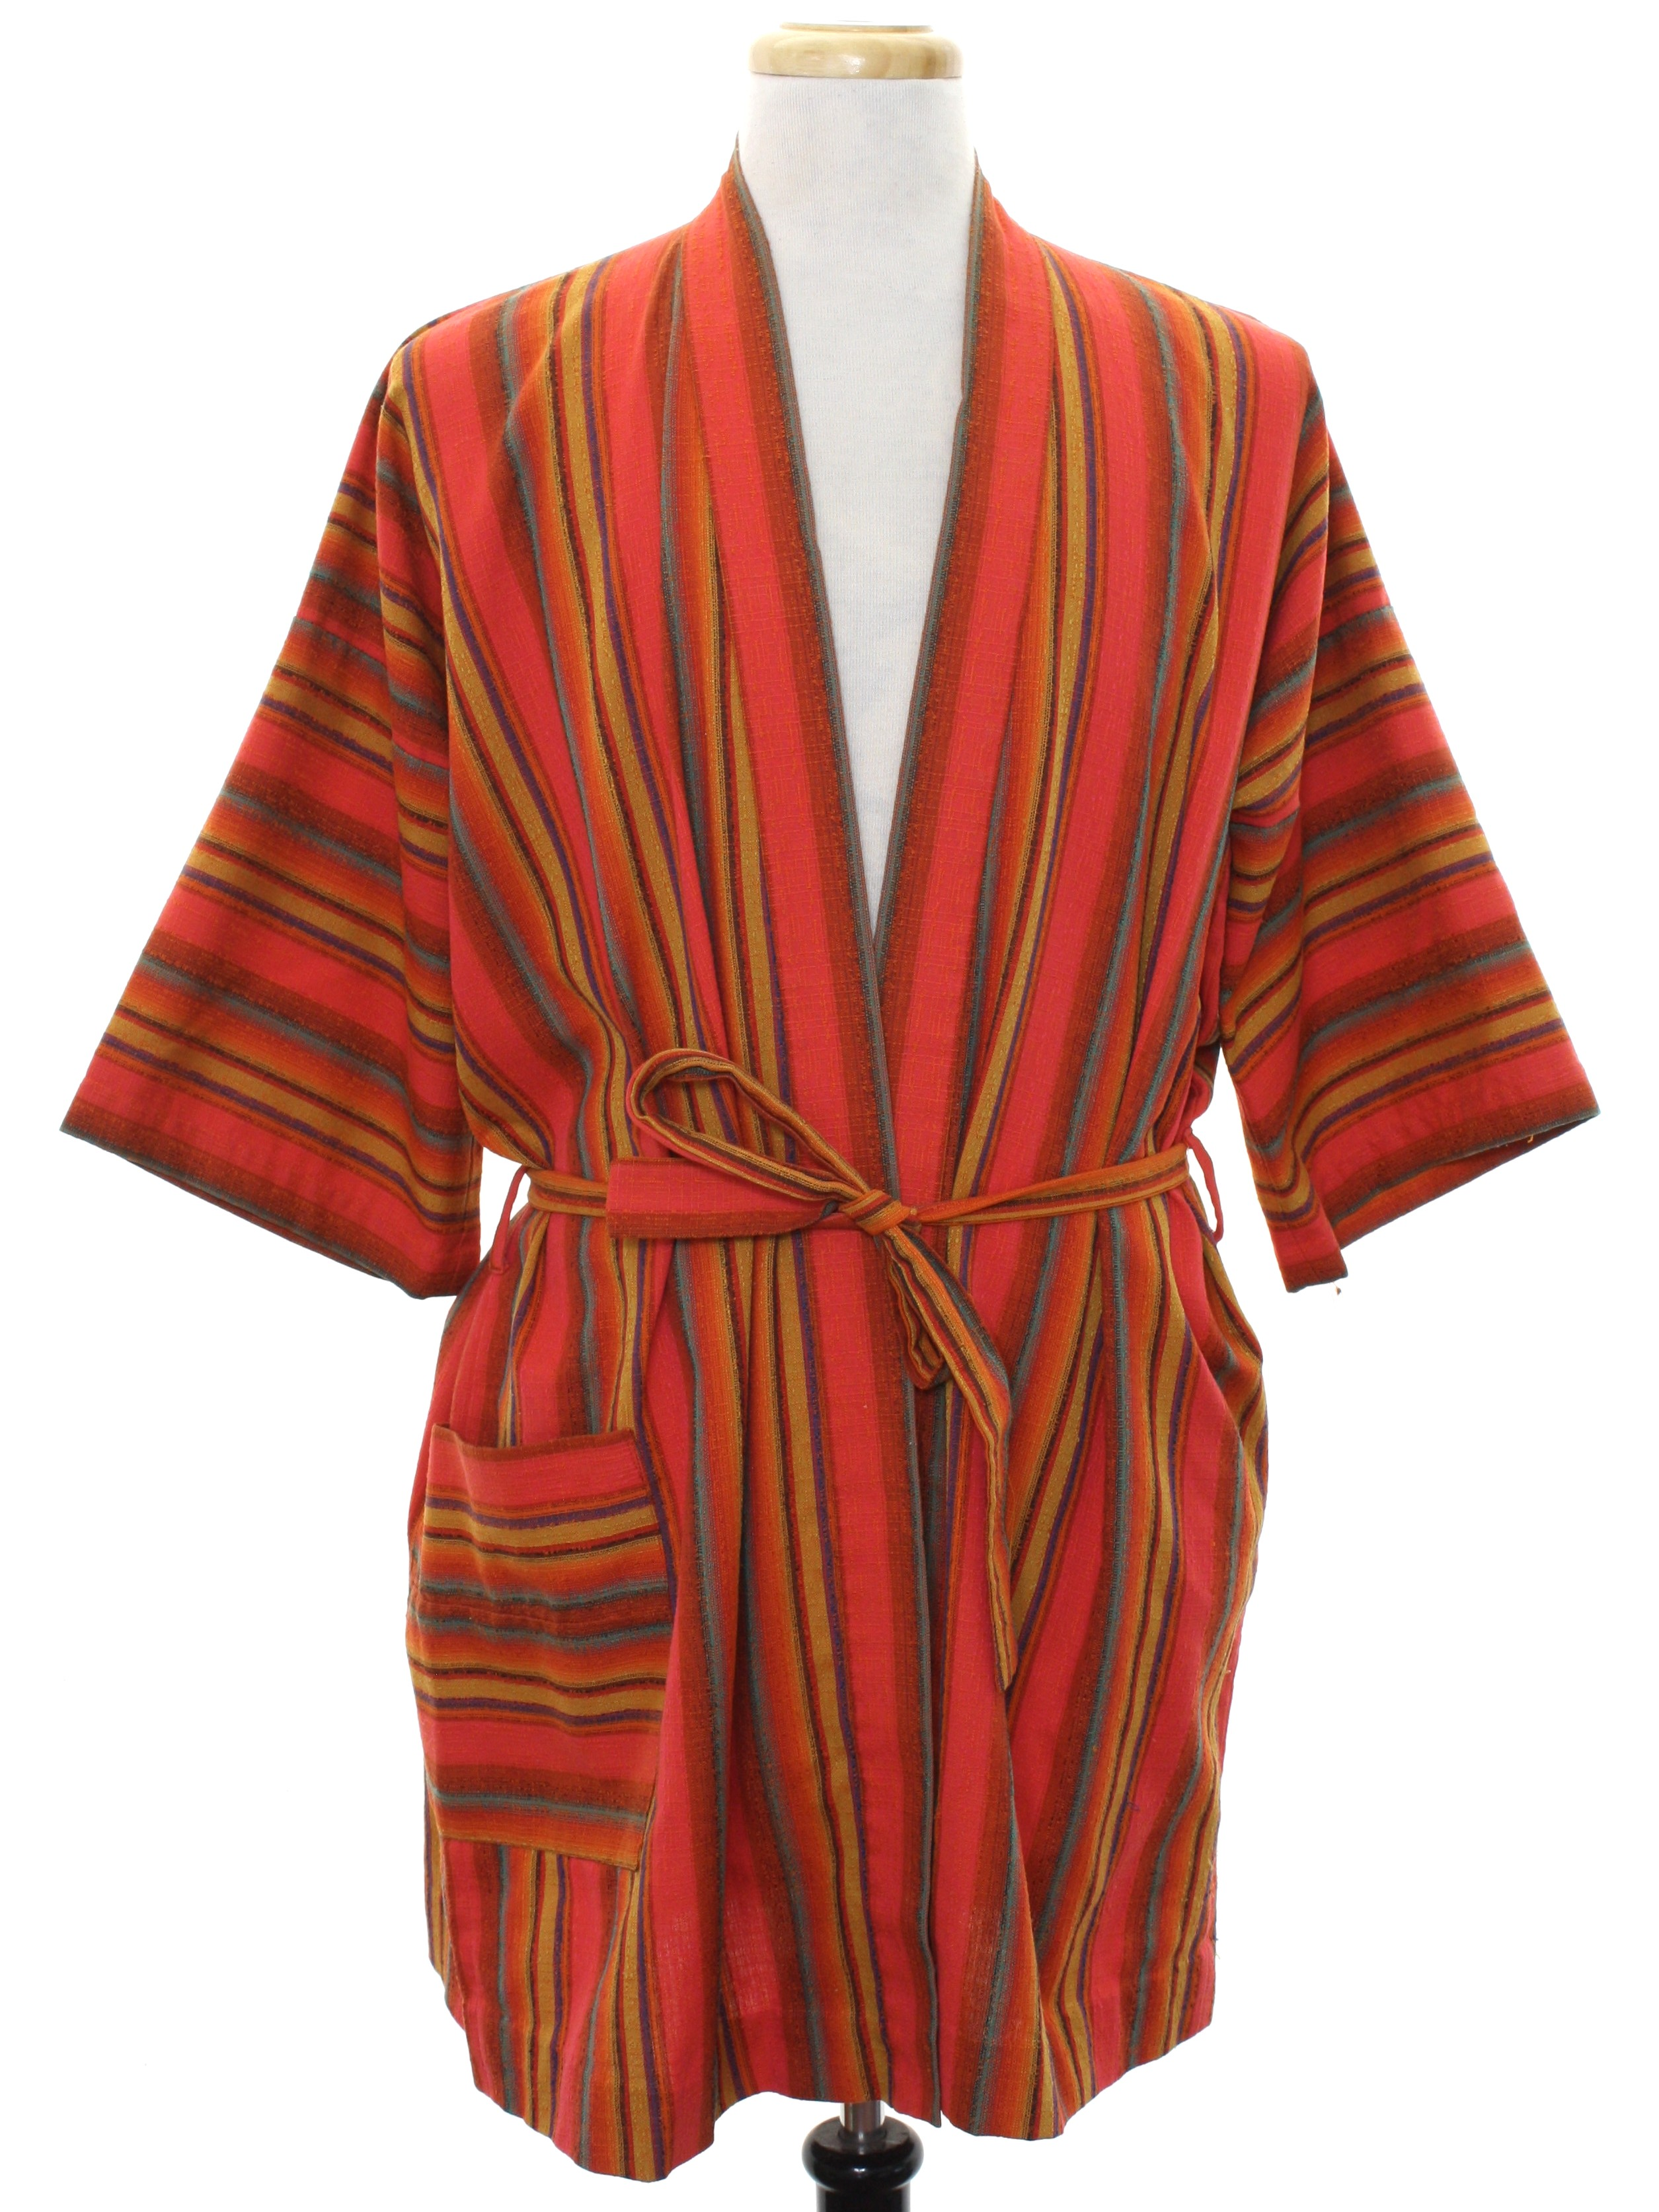 on feet at classic style great varieties 1960's Mens Mod Robe